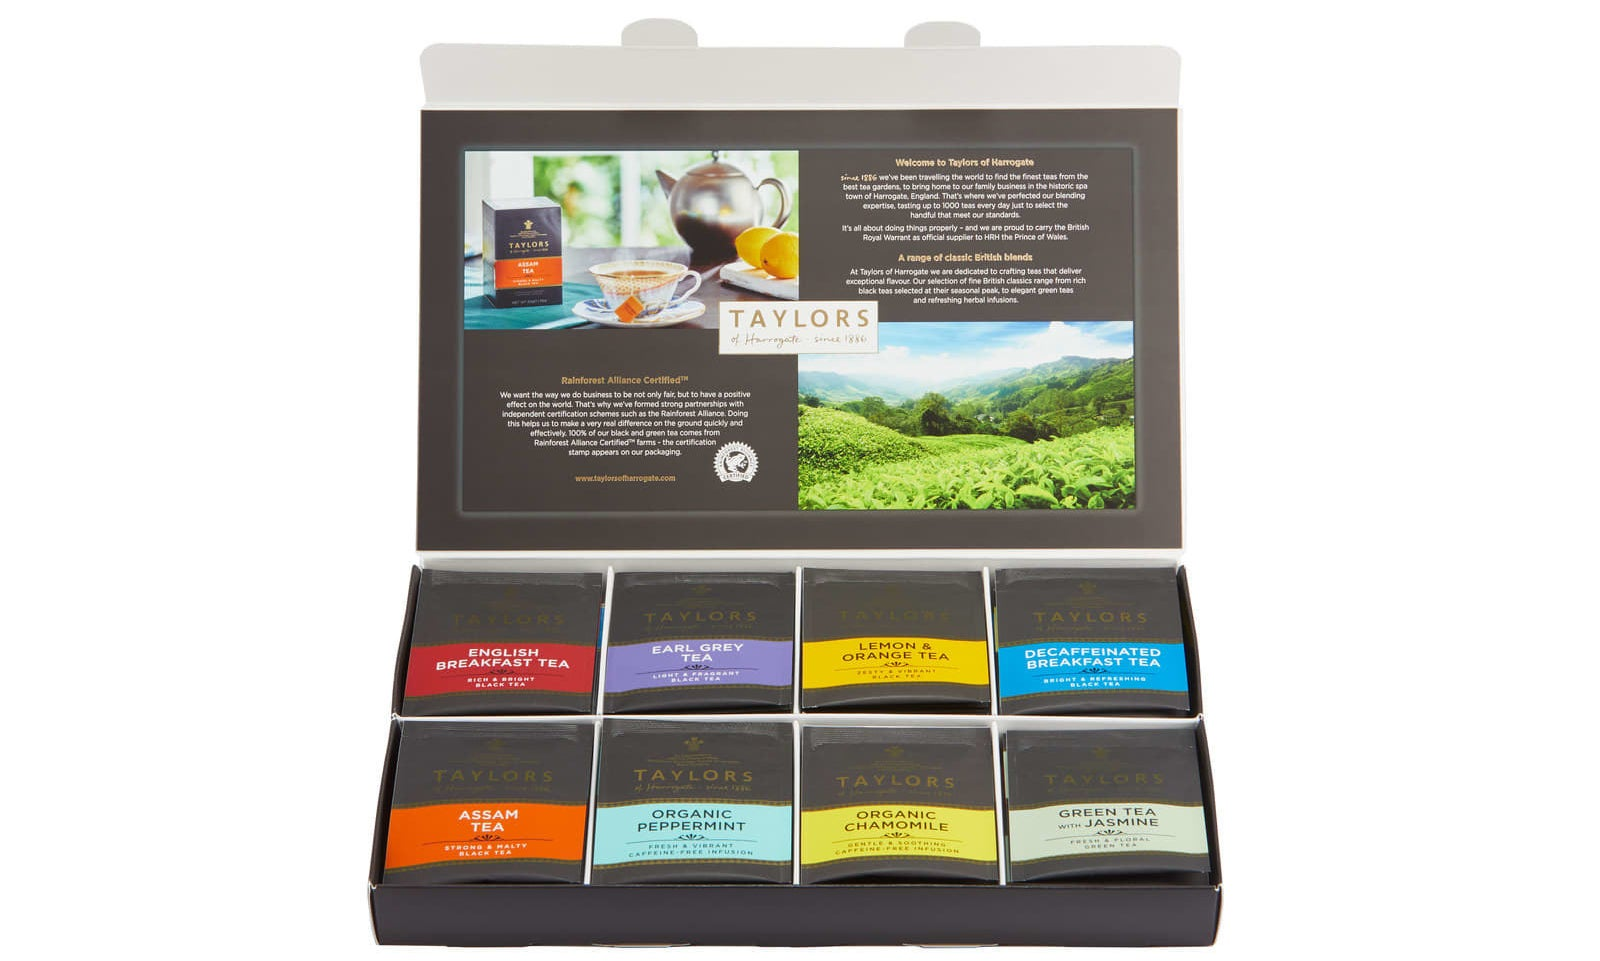 Includes eight varieties: English breakfast, Earl grey, lemon and orange, decaf breakfast, Assam, organic peppermint, organic chamomile, and green tea with jasmine.Get them from Walmart for $11.49.